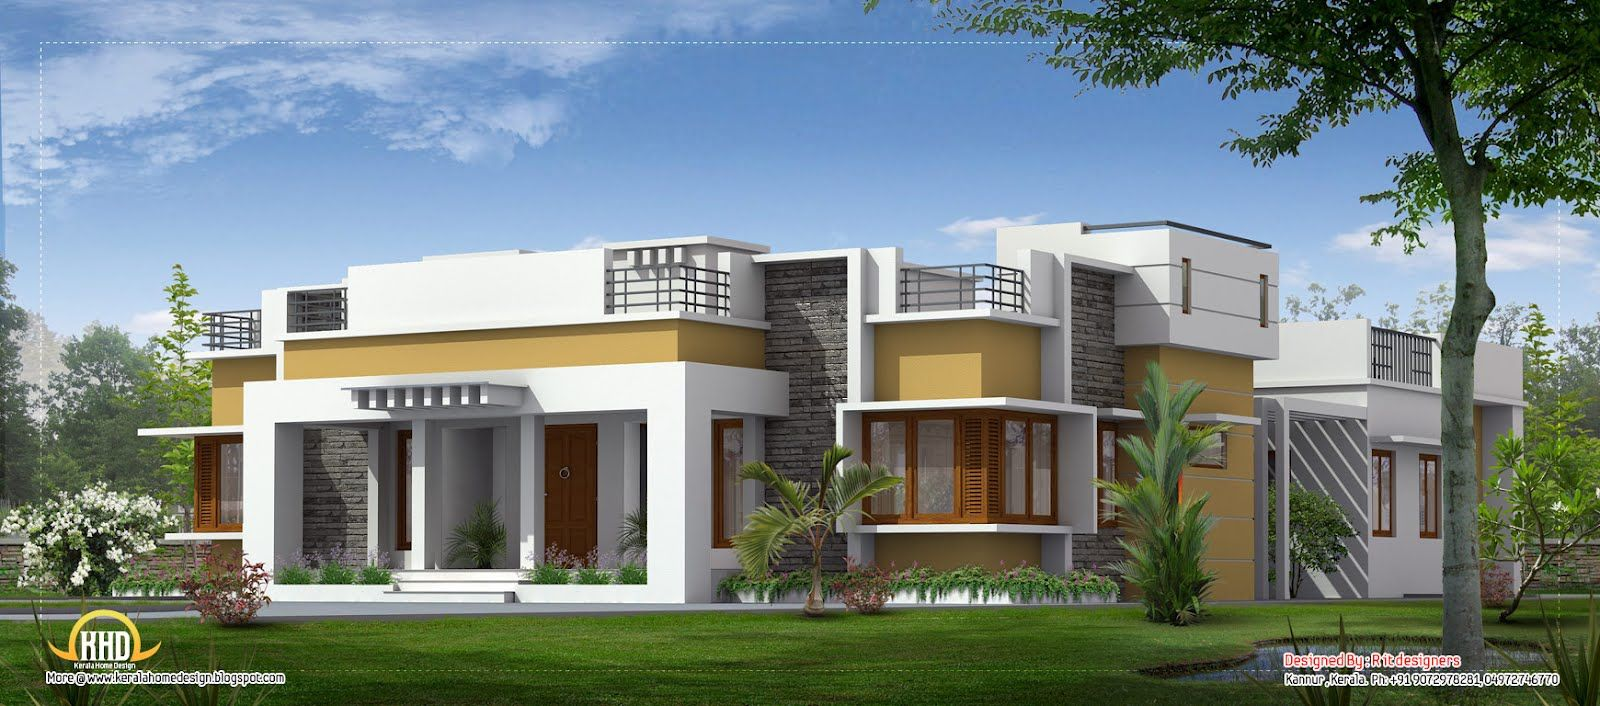 Single level designer home single floor house plans for Modern house design single floor